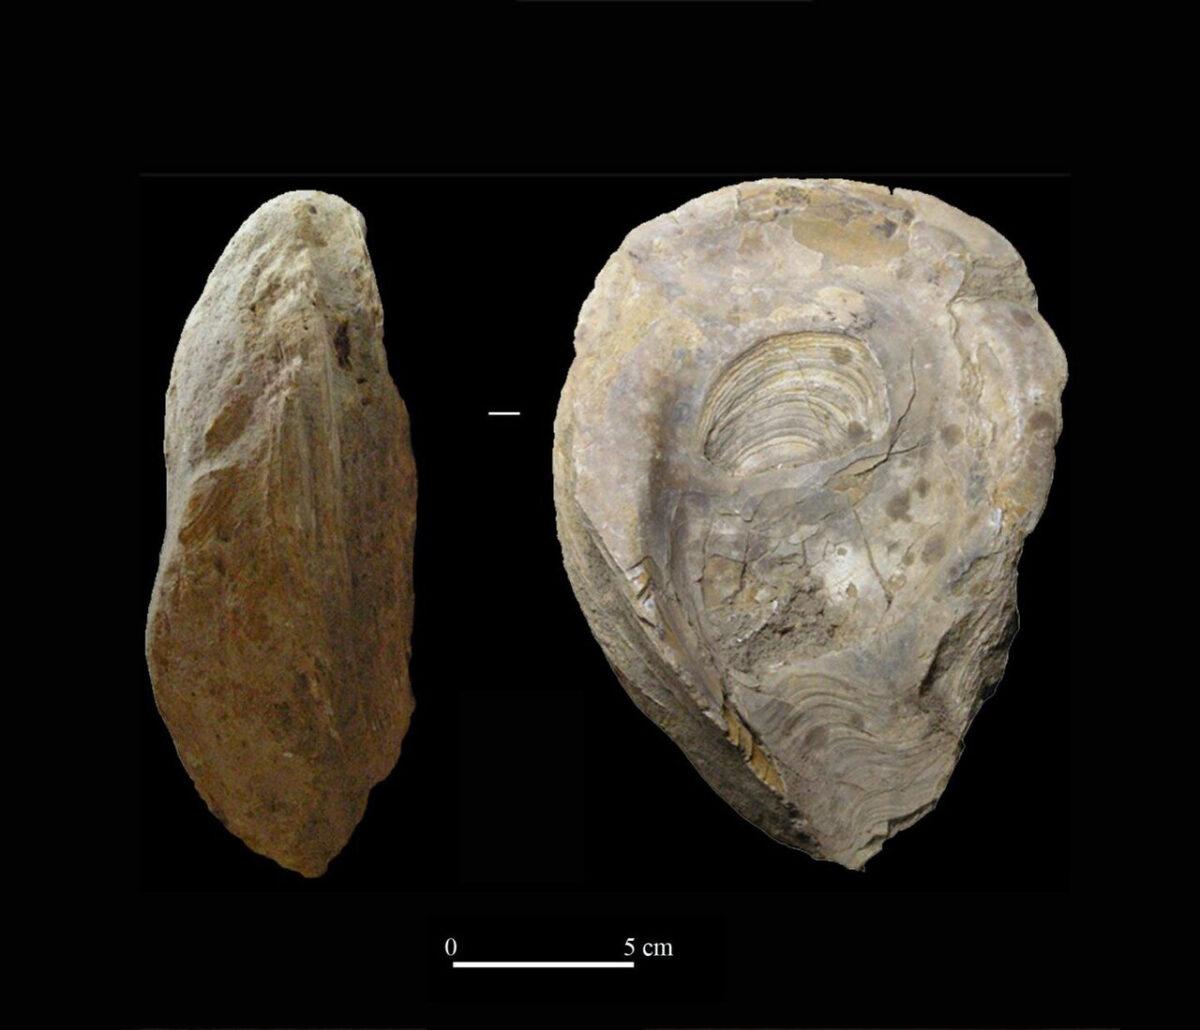 Lamp on fossil oyster. Credit: Universidad de Sevilla